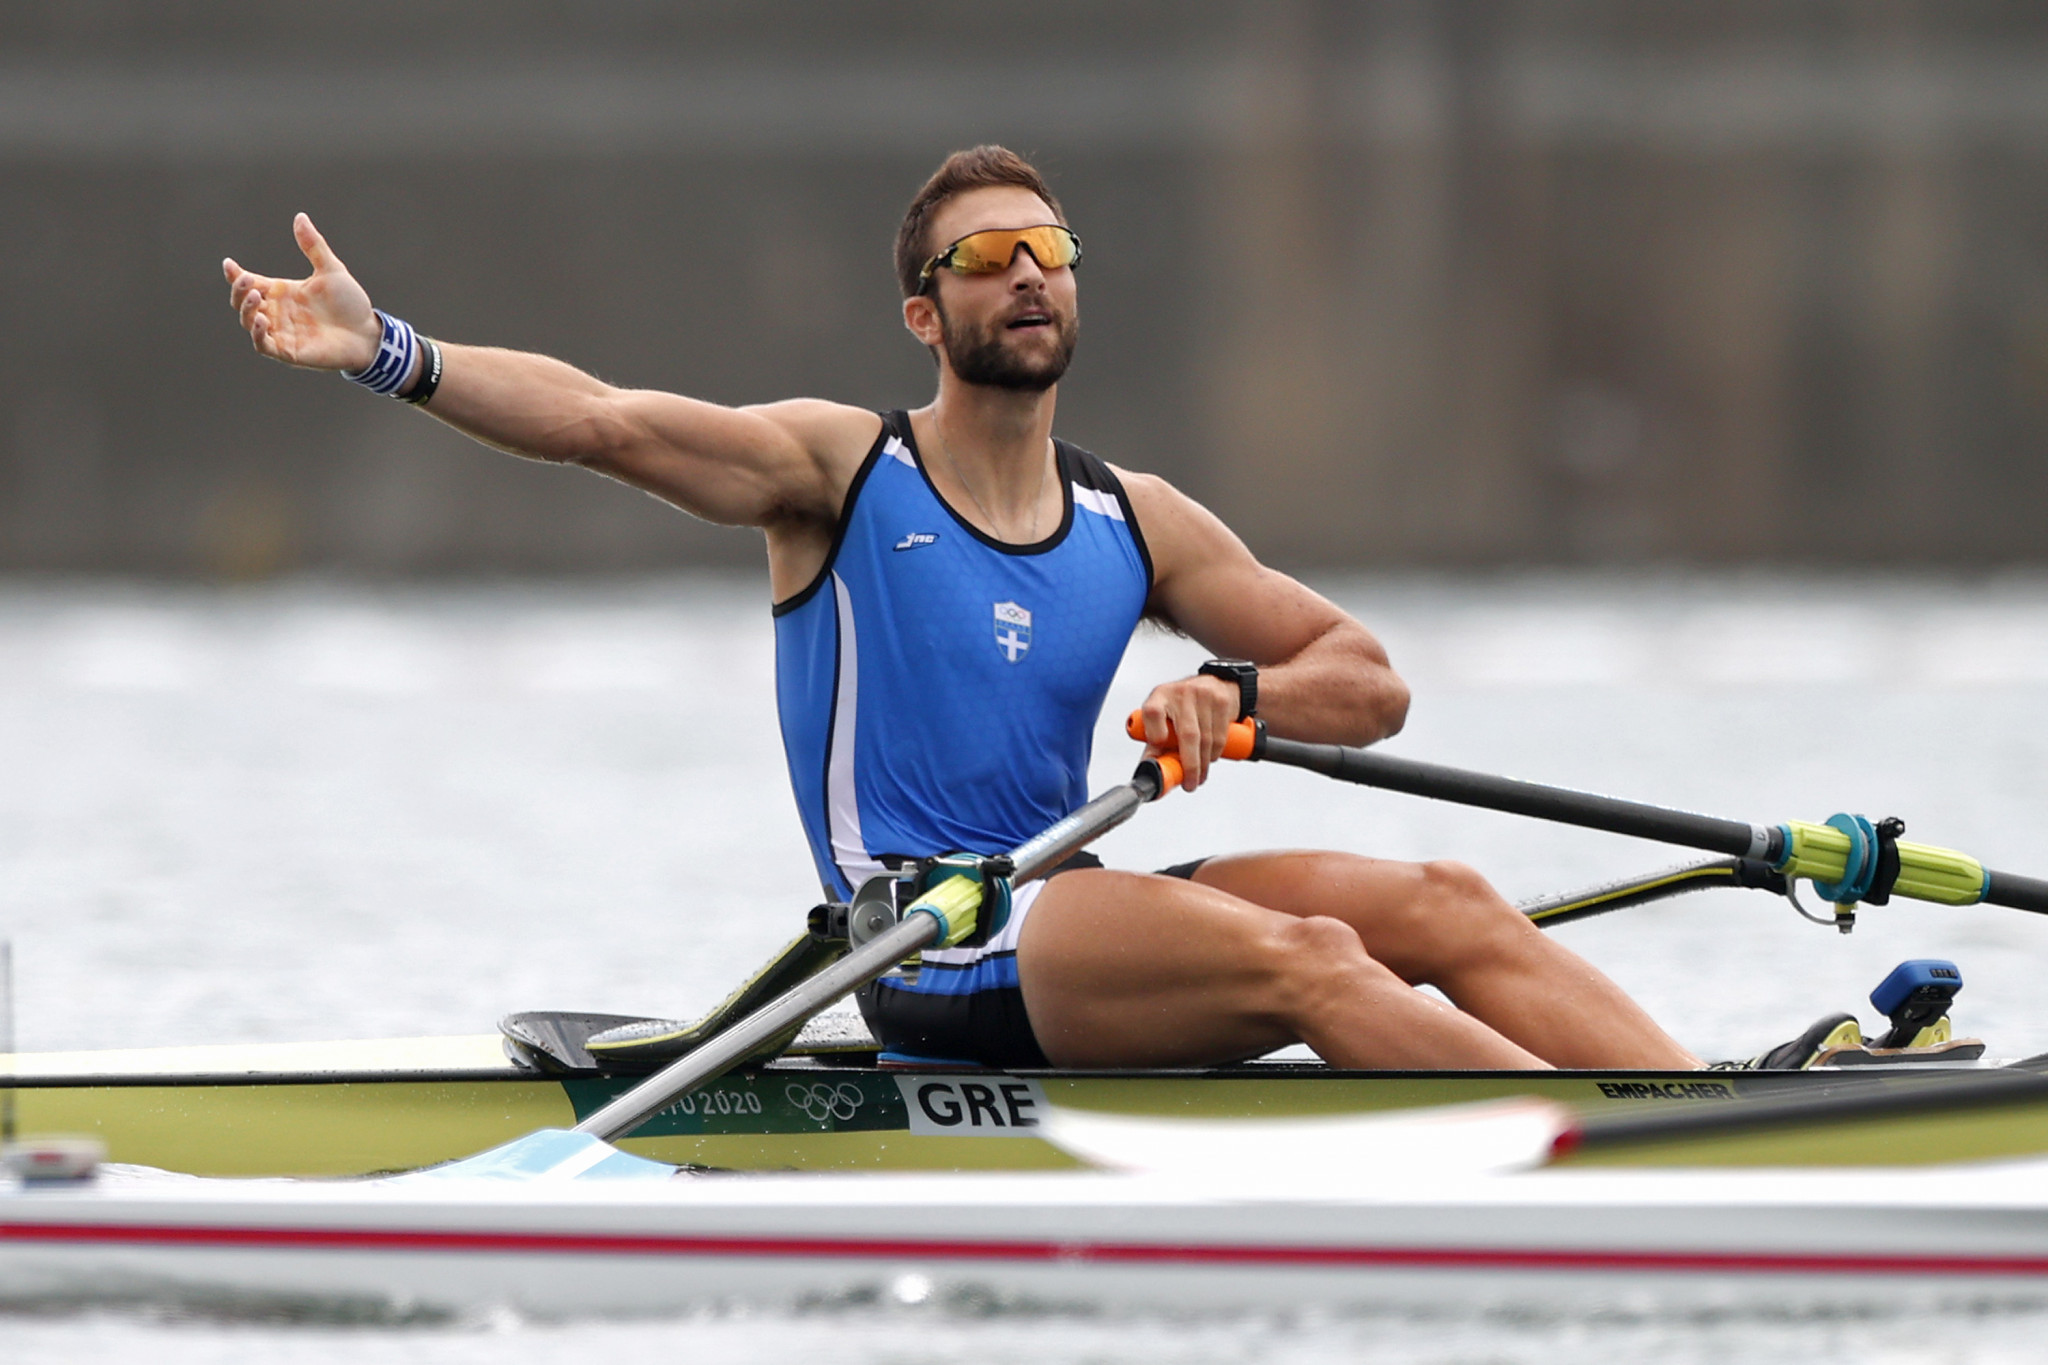 Ntouskos wins Greece's first Olympic rowing gold as Twigg ends wait for title